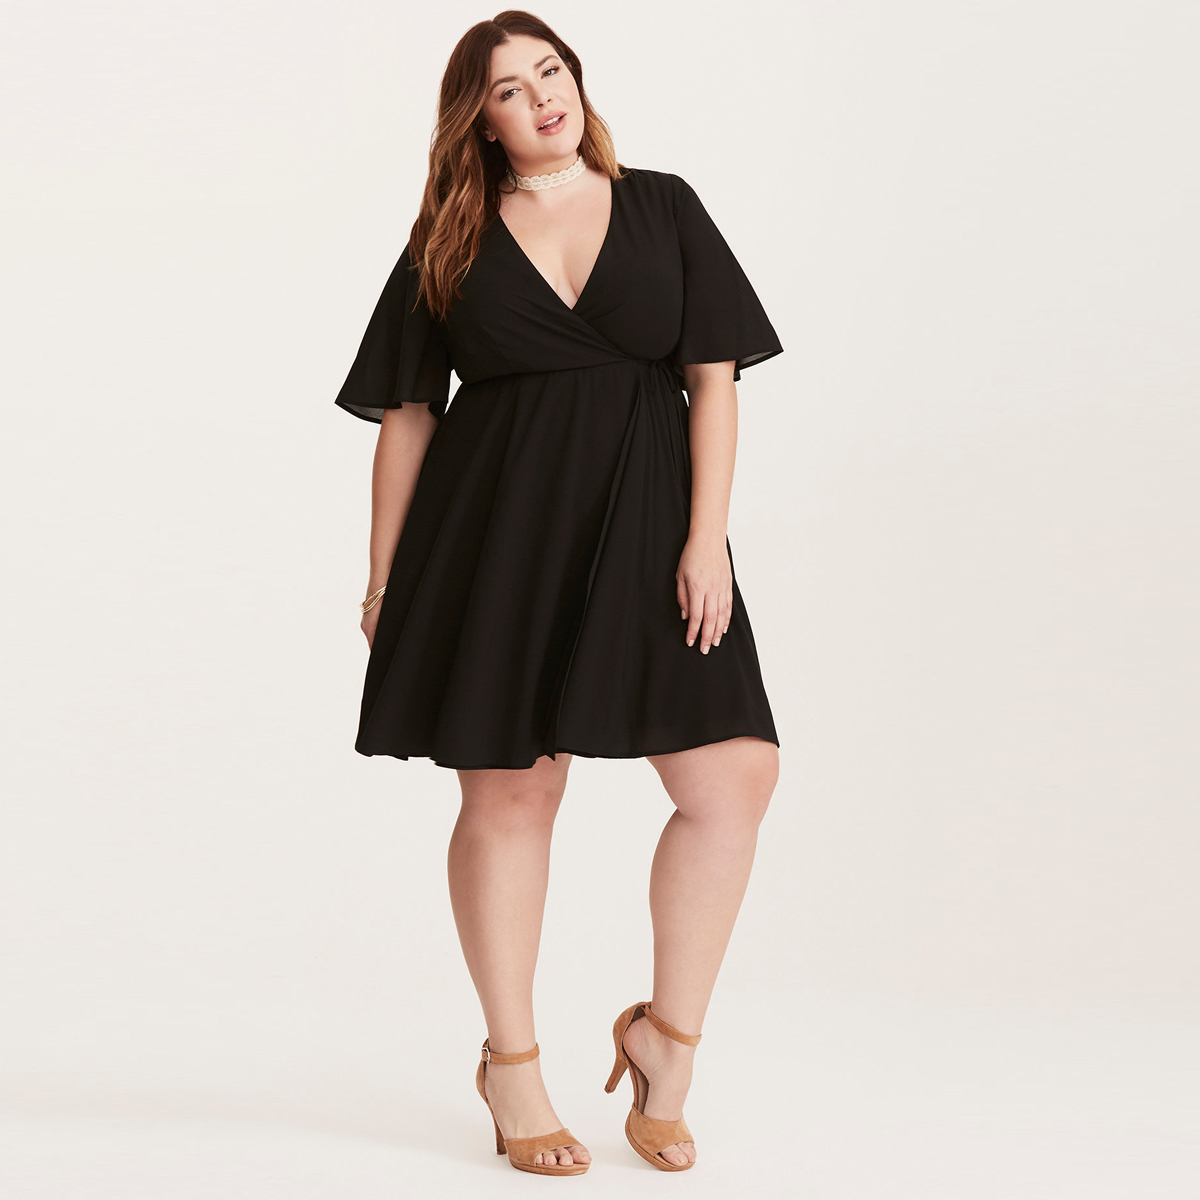 bc77f28b6d0 MCO 2018 Summer Sexy V Neck Plus Size Wrap Dress Oversized Basic Big Office Ladies  Dresses Classic Black Womens Dress 5xl 6xl-in Dresses from Women s ...